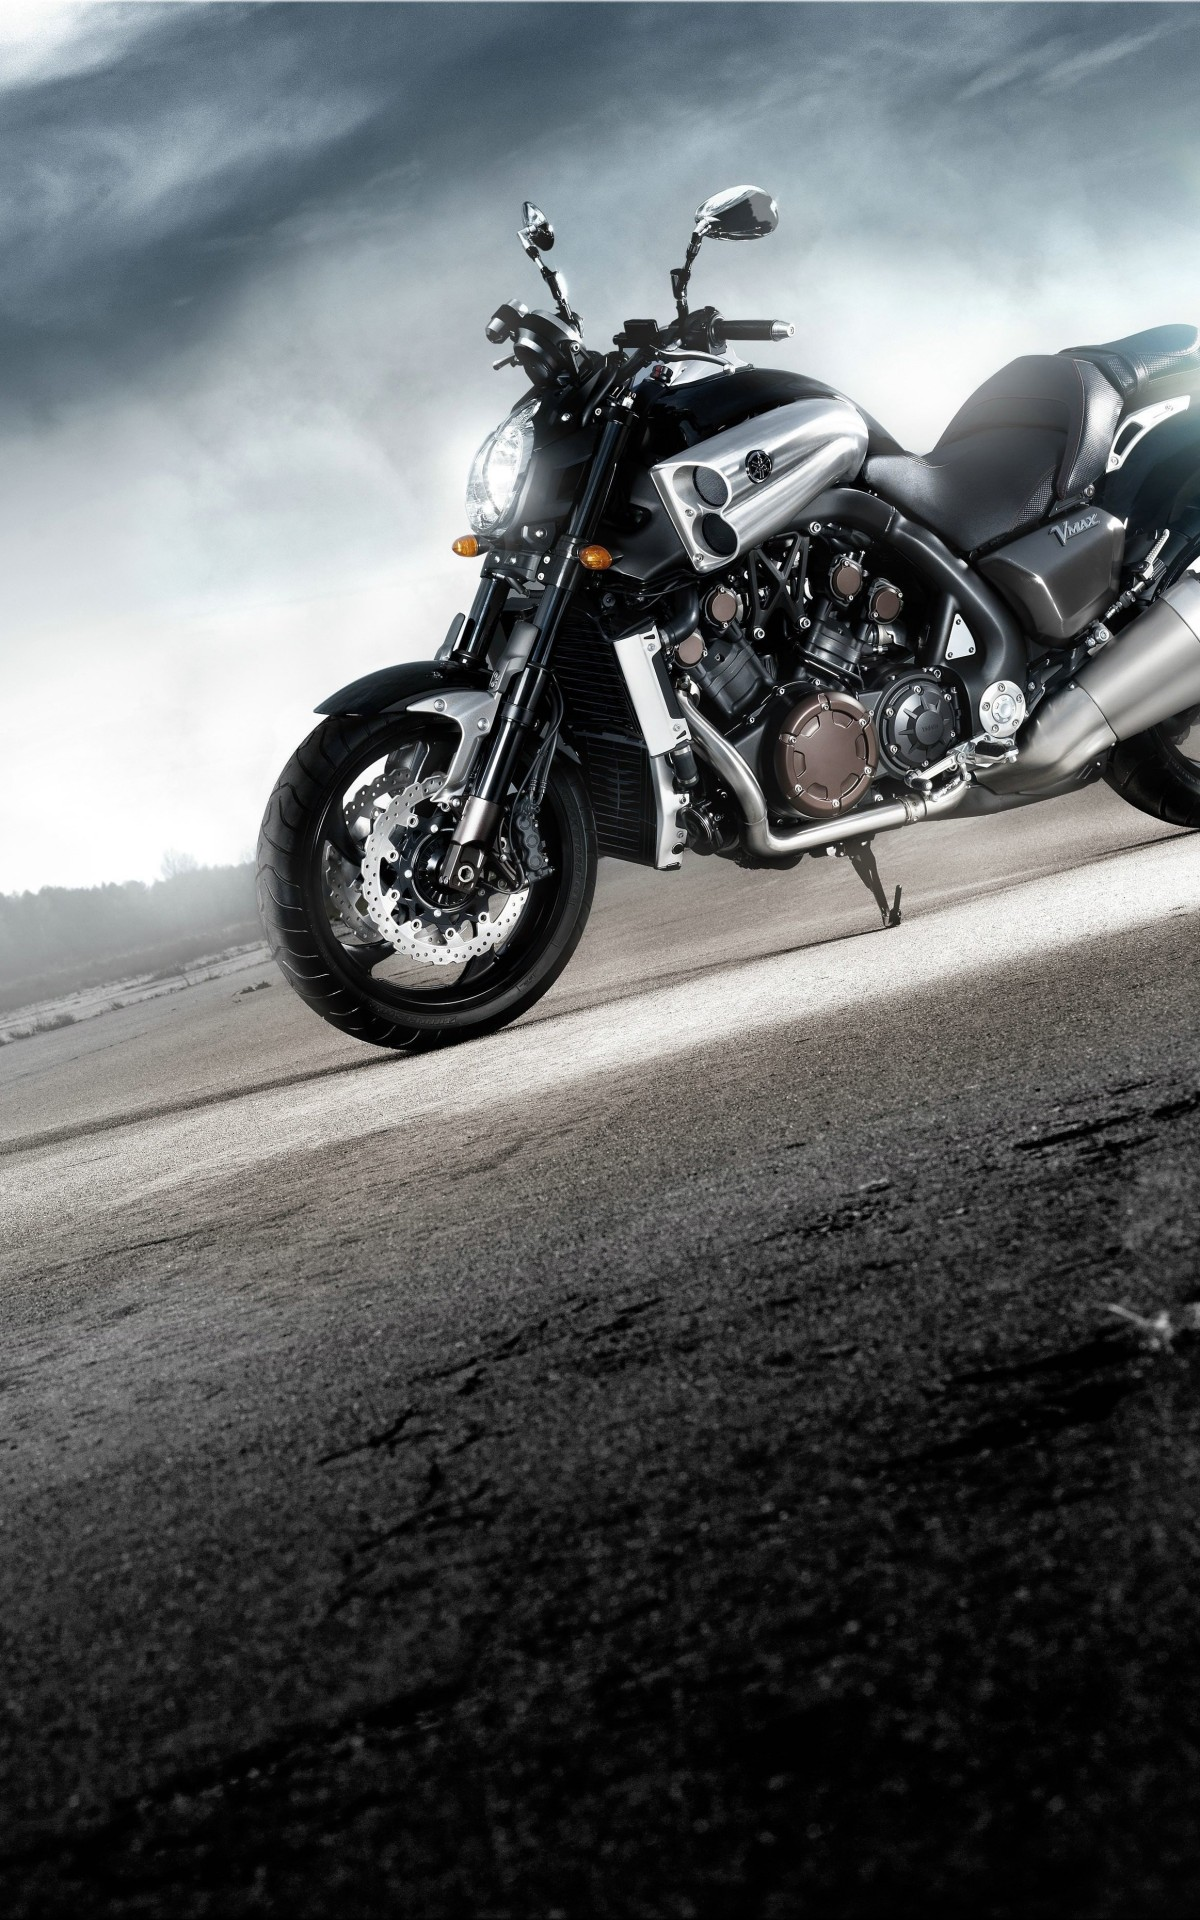 Yamaha VMax Wallpaper for Amazon Kindle Fire HDX